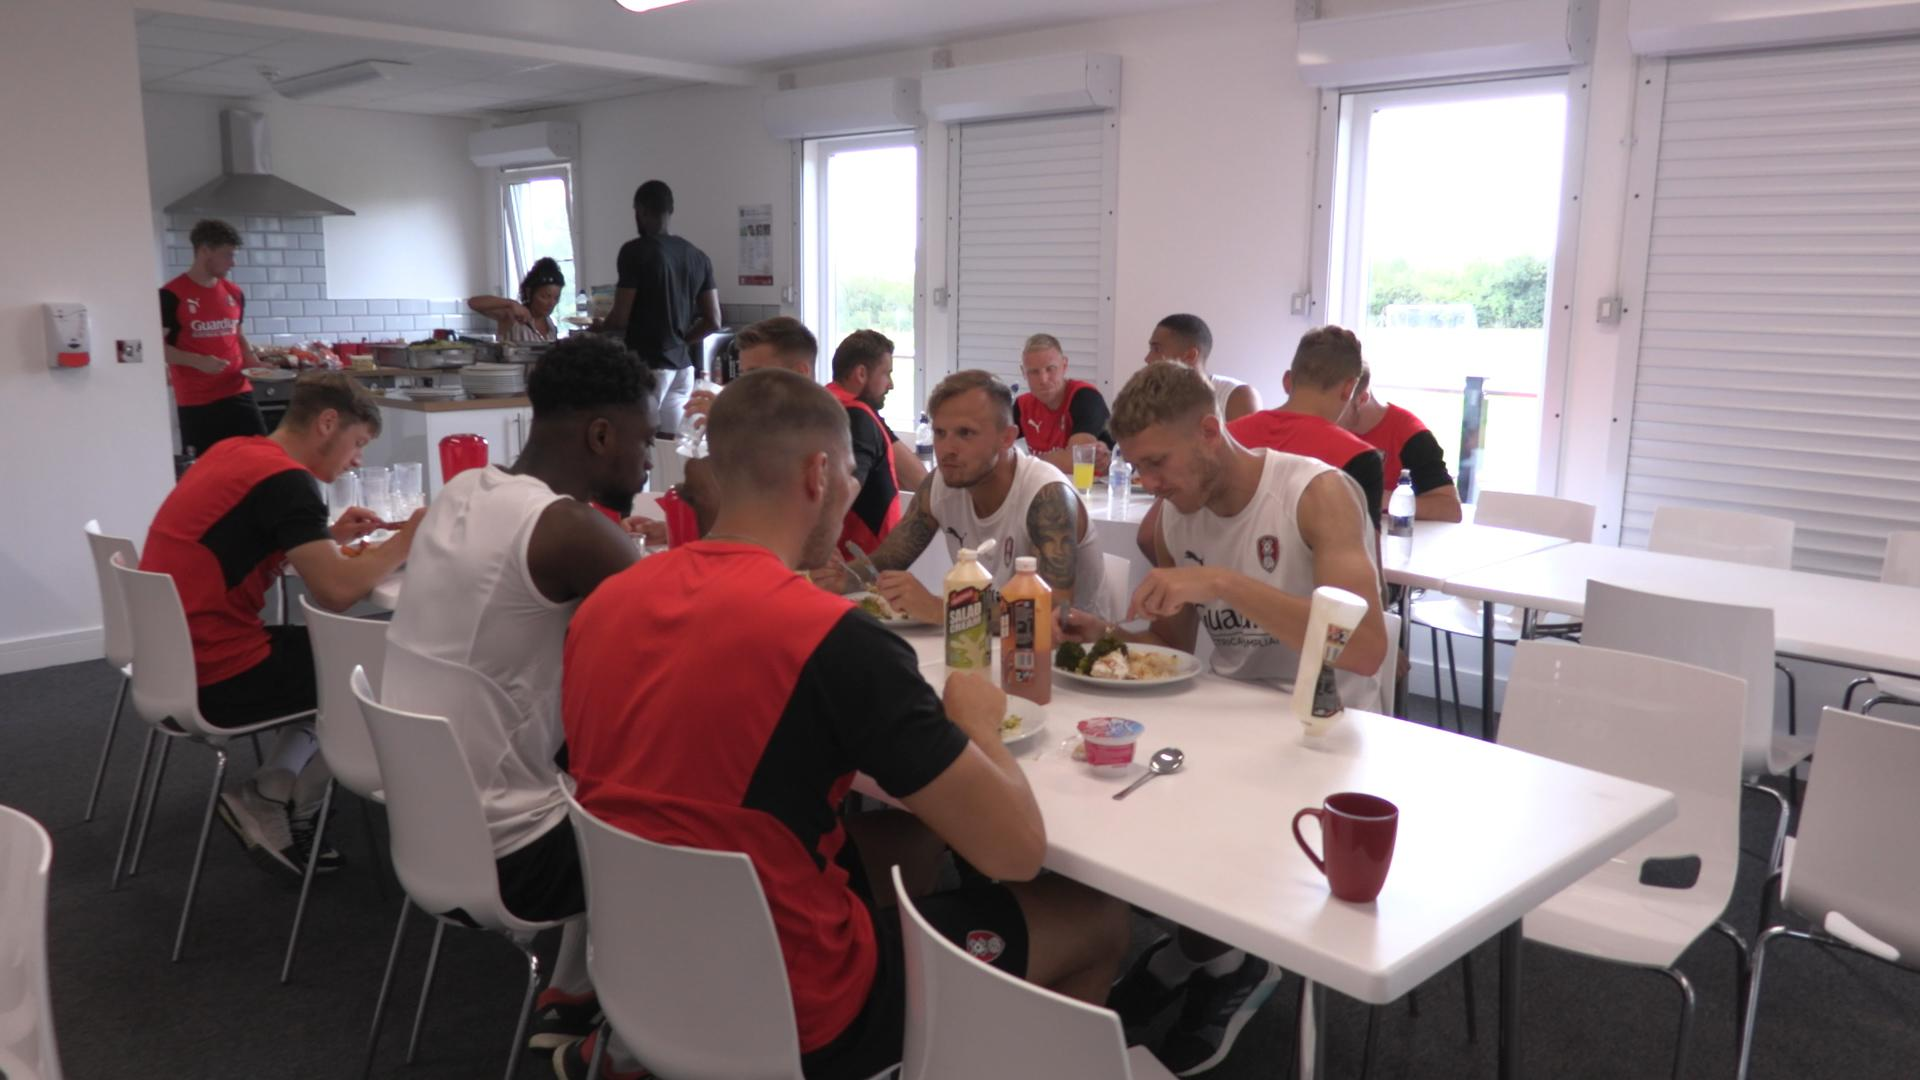 Rotherham players in the club canteen at lunchtime